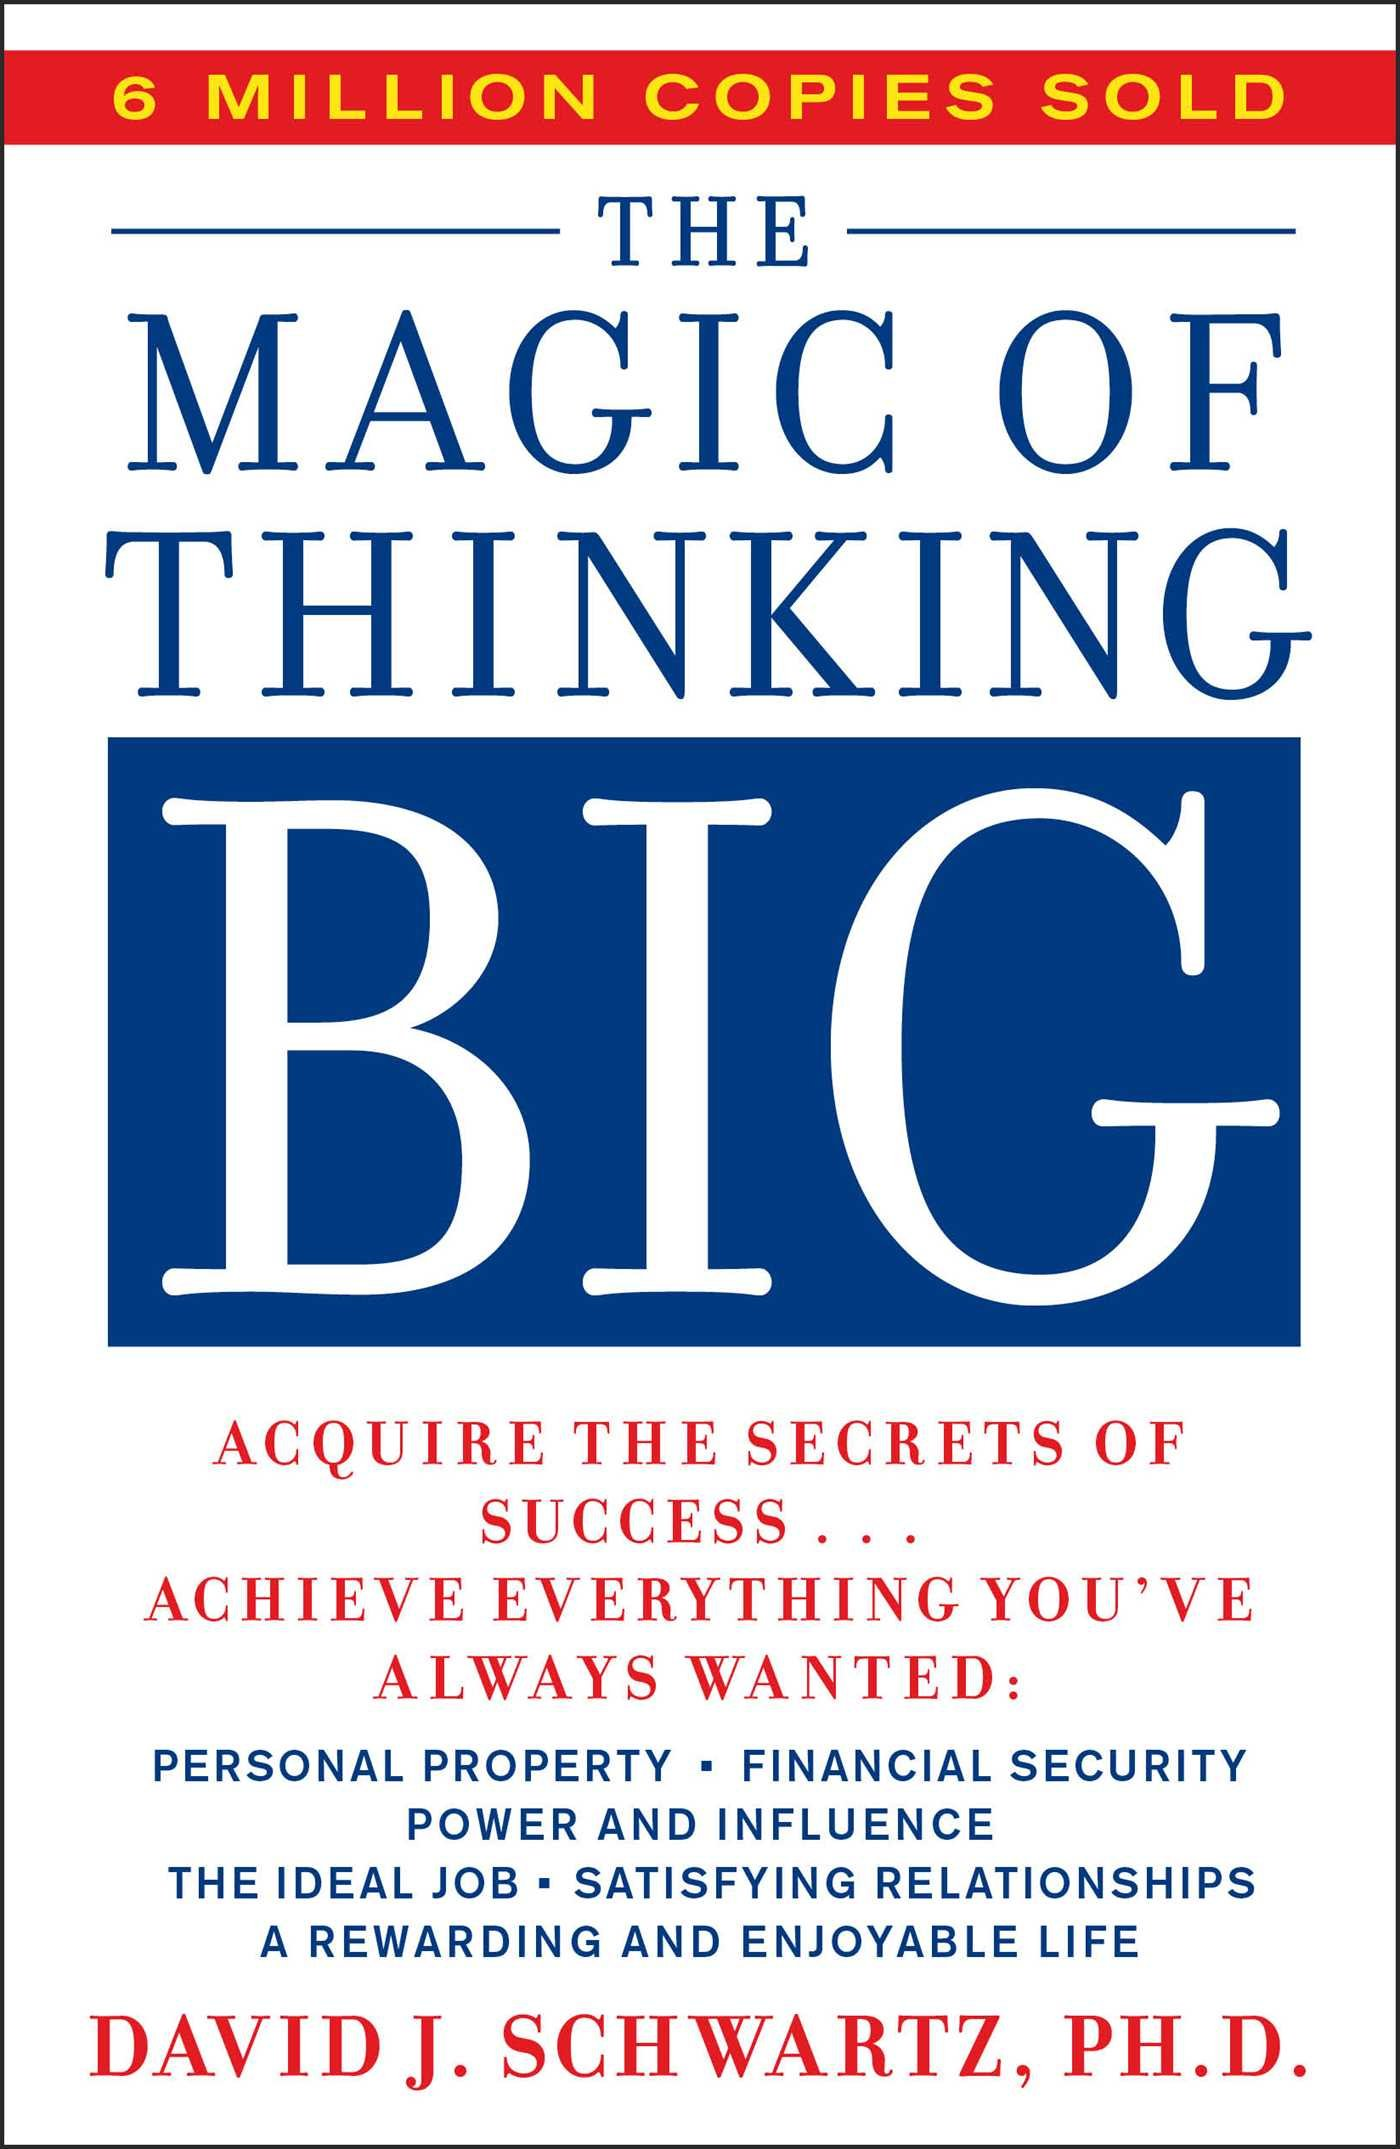 The magic of thinking big - I think the title speaks for itself. This books is apparently all about setting goals and crushing them